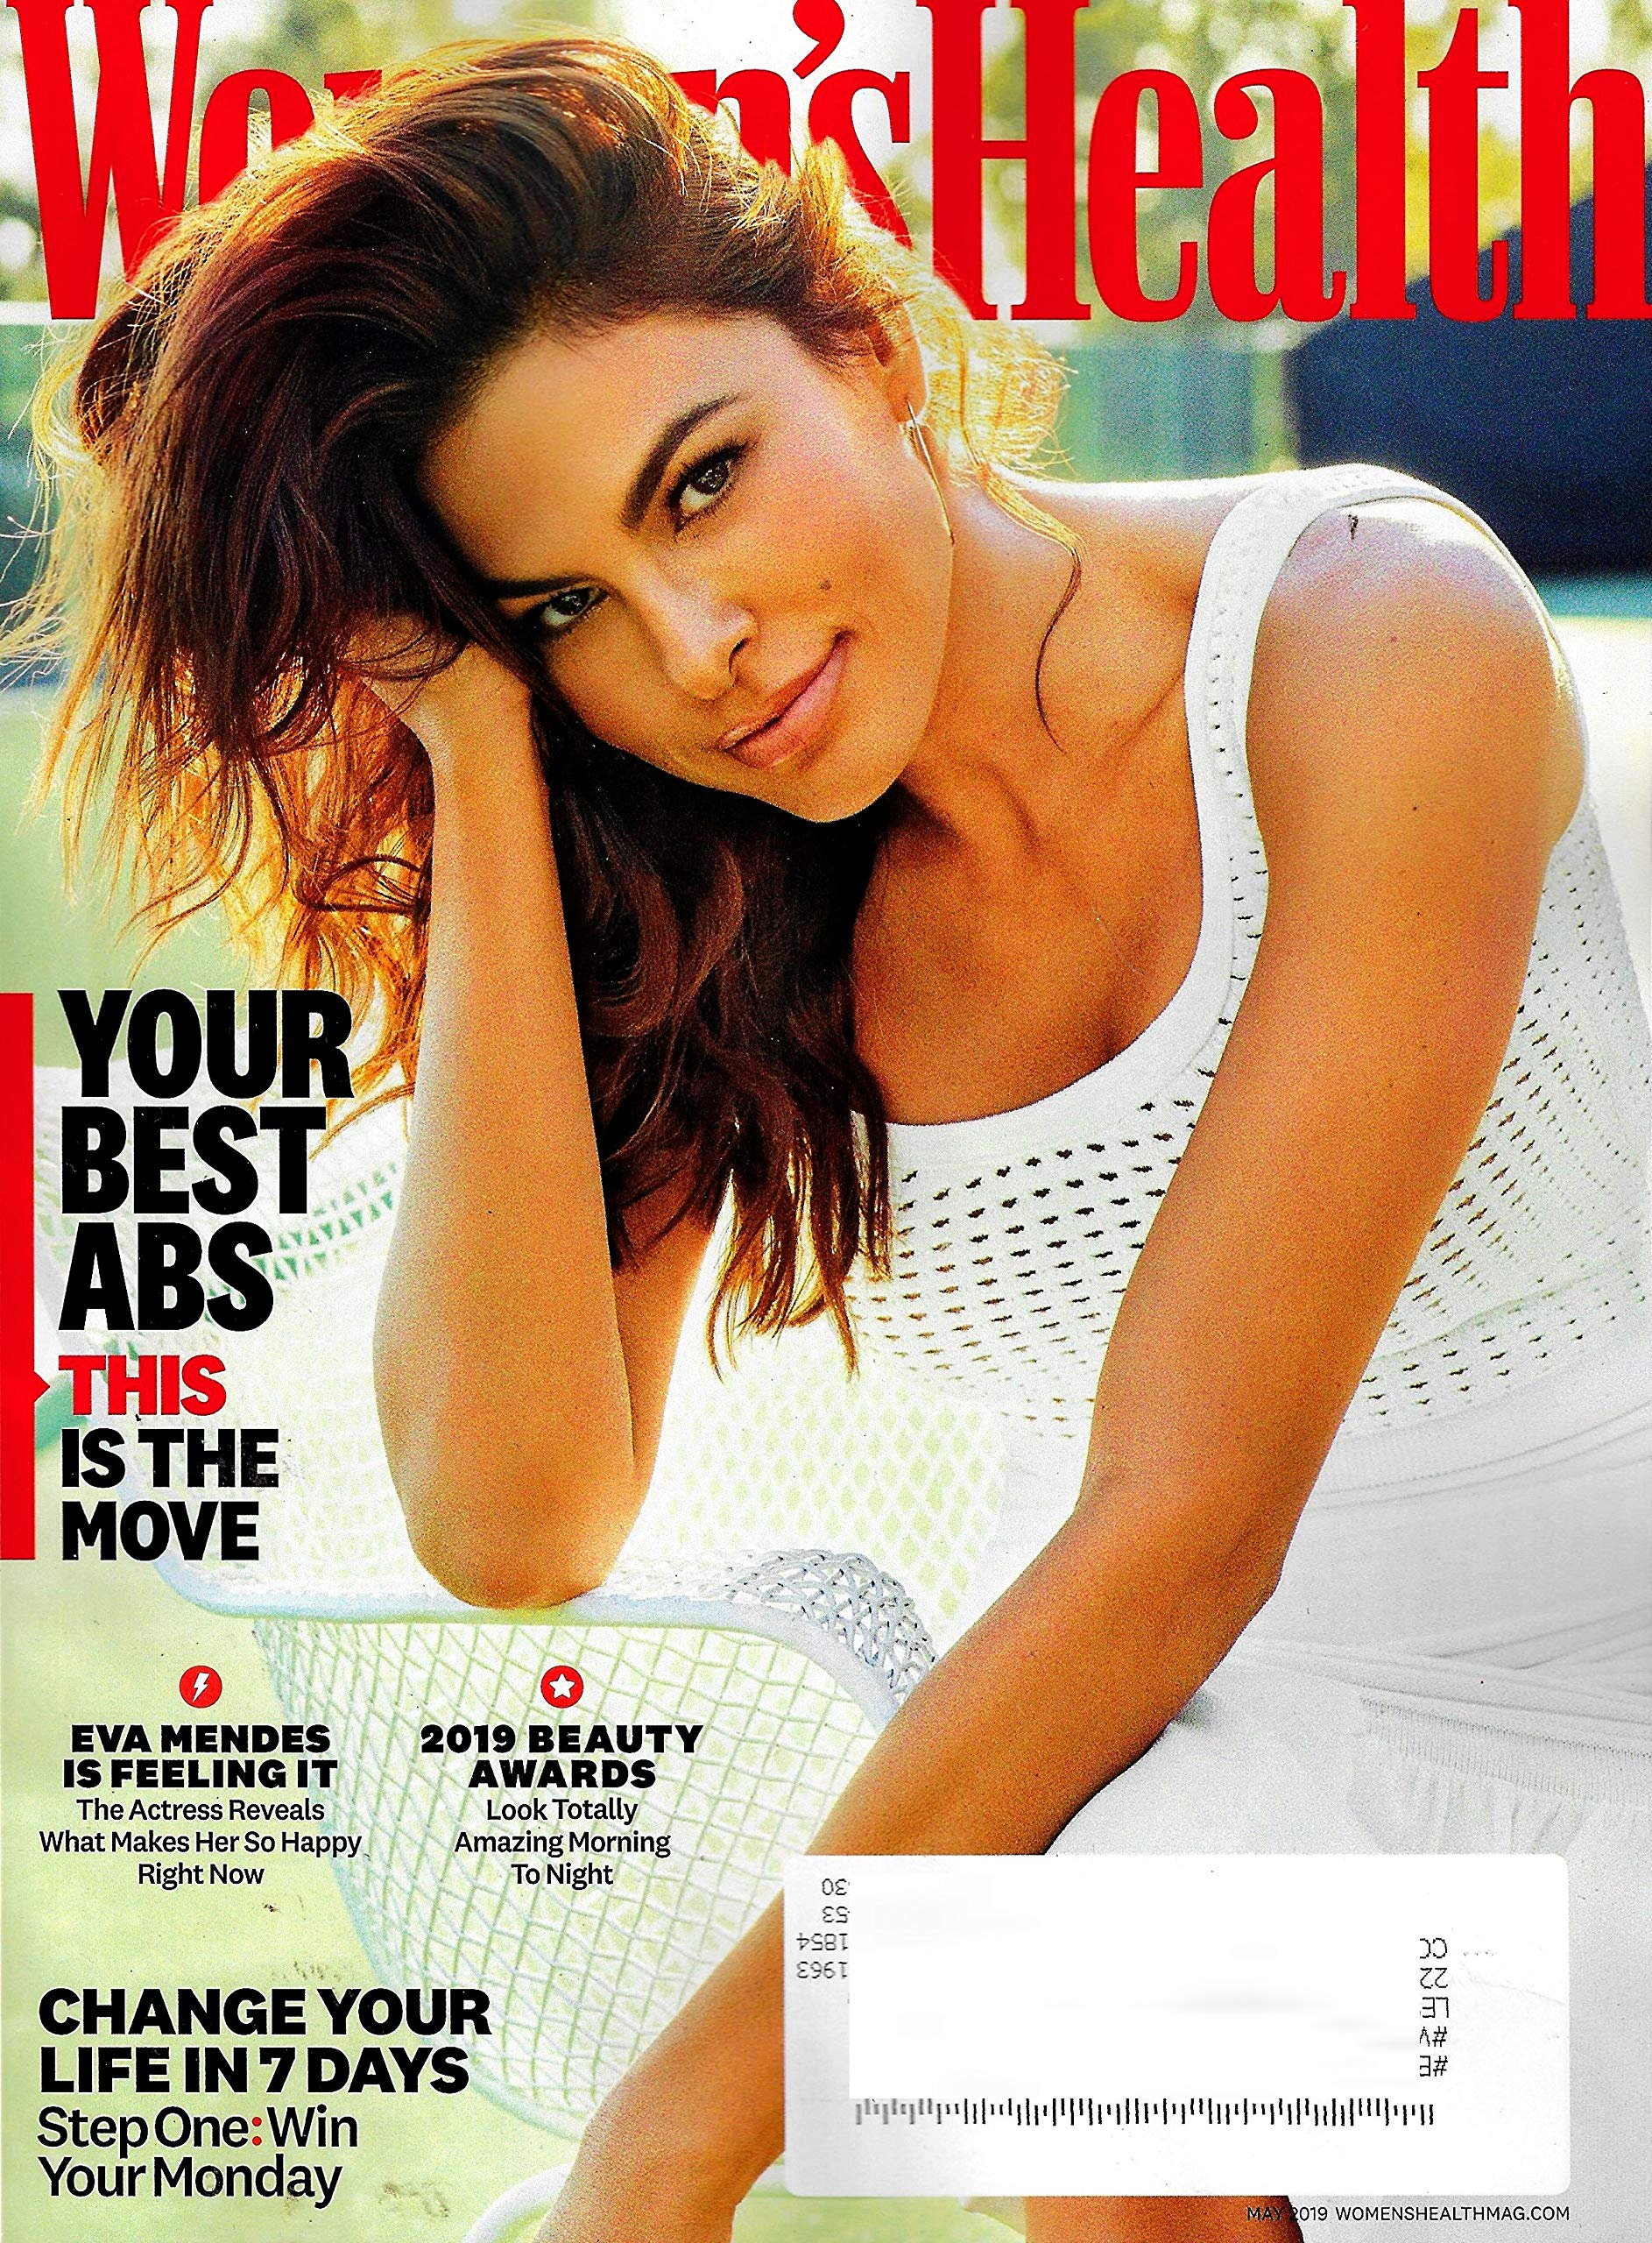 Womens Health Magazine May 2019 Eva Mendes Cover Your Best Abs